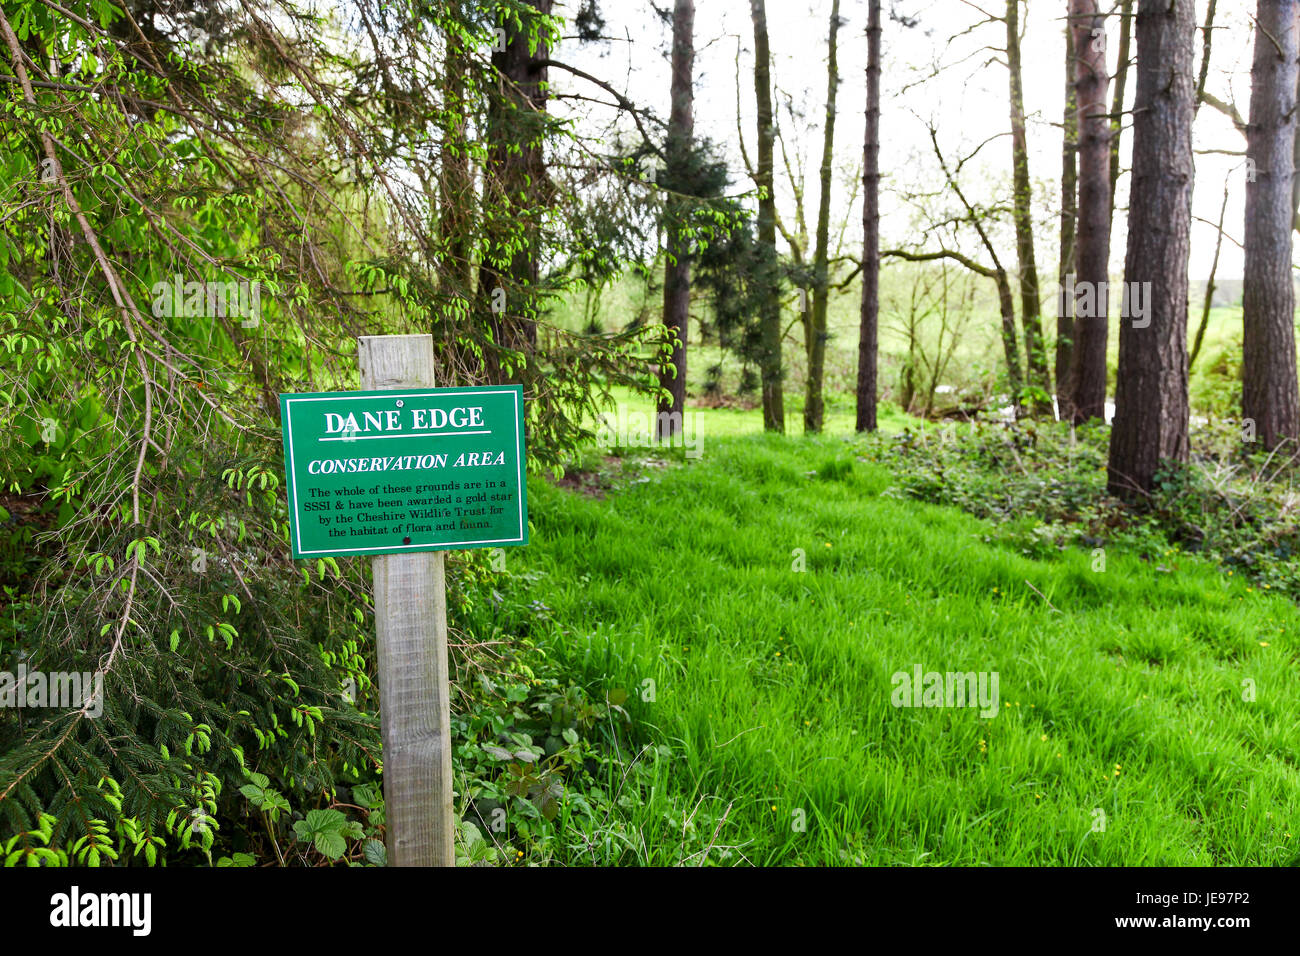 A sign at Dane Edge conservation area and Site of Special Scientific Interest or SSSI at Swettenham Cheshire England - Stock Image